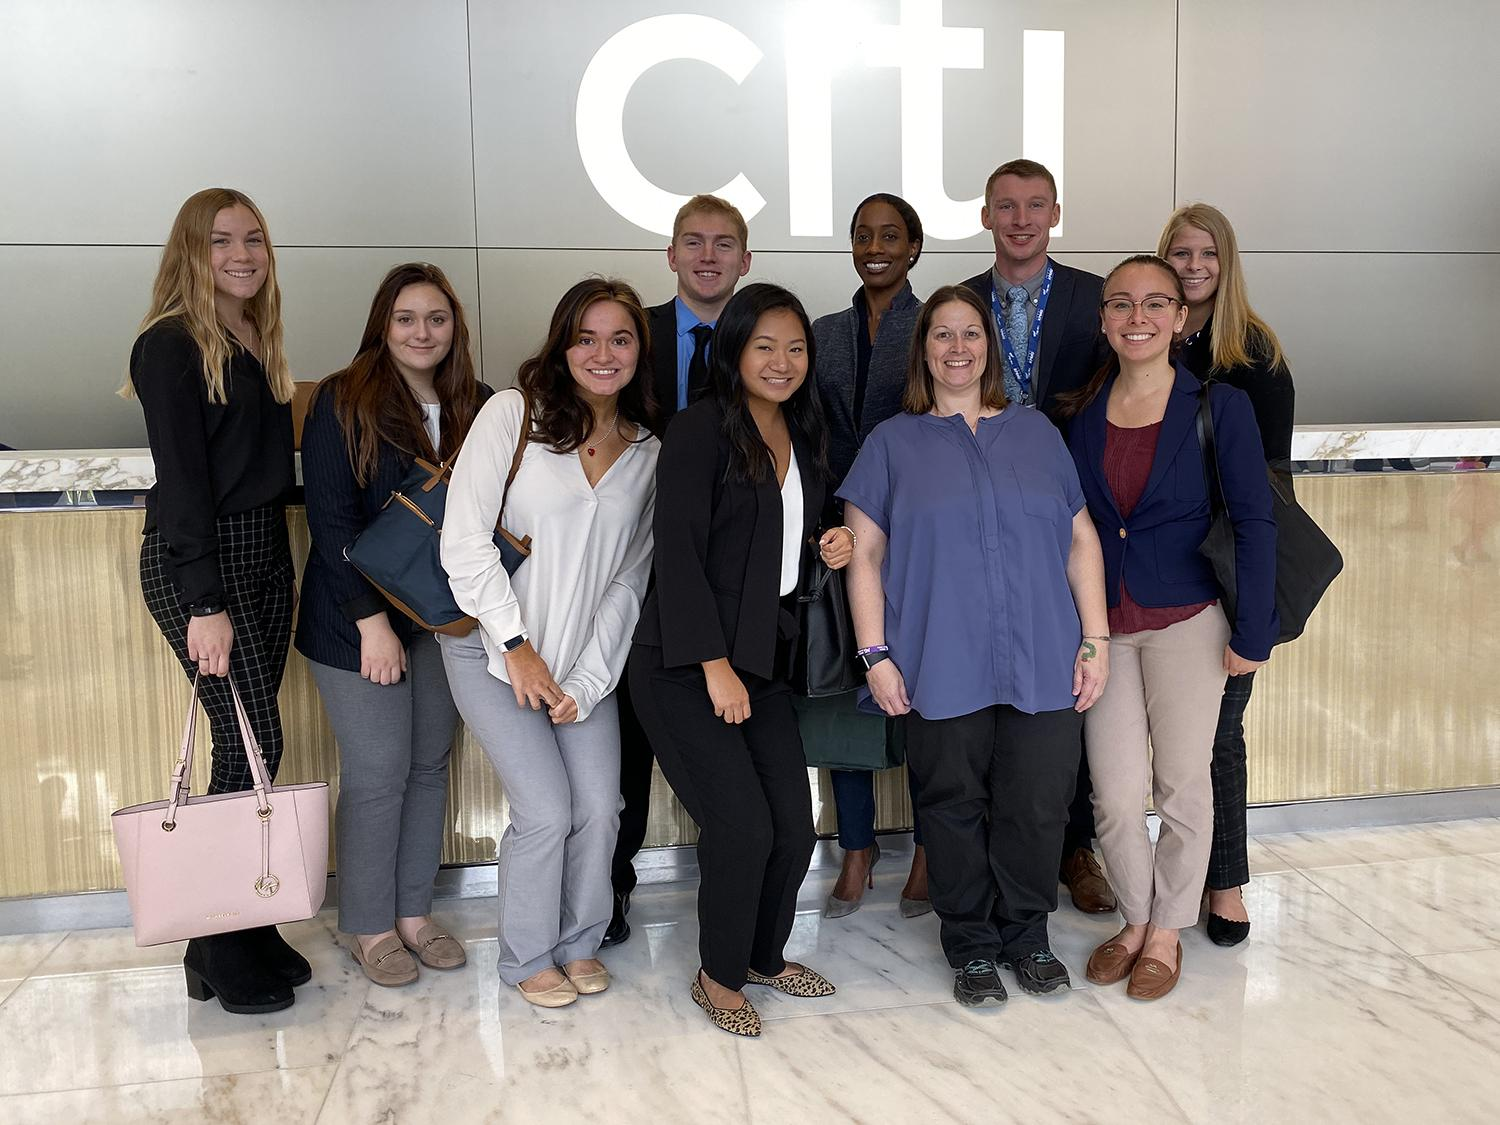 Oswego students getting a behind-the-scenes view of CitiGroup, thanks to an alumna